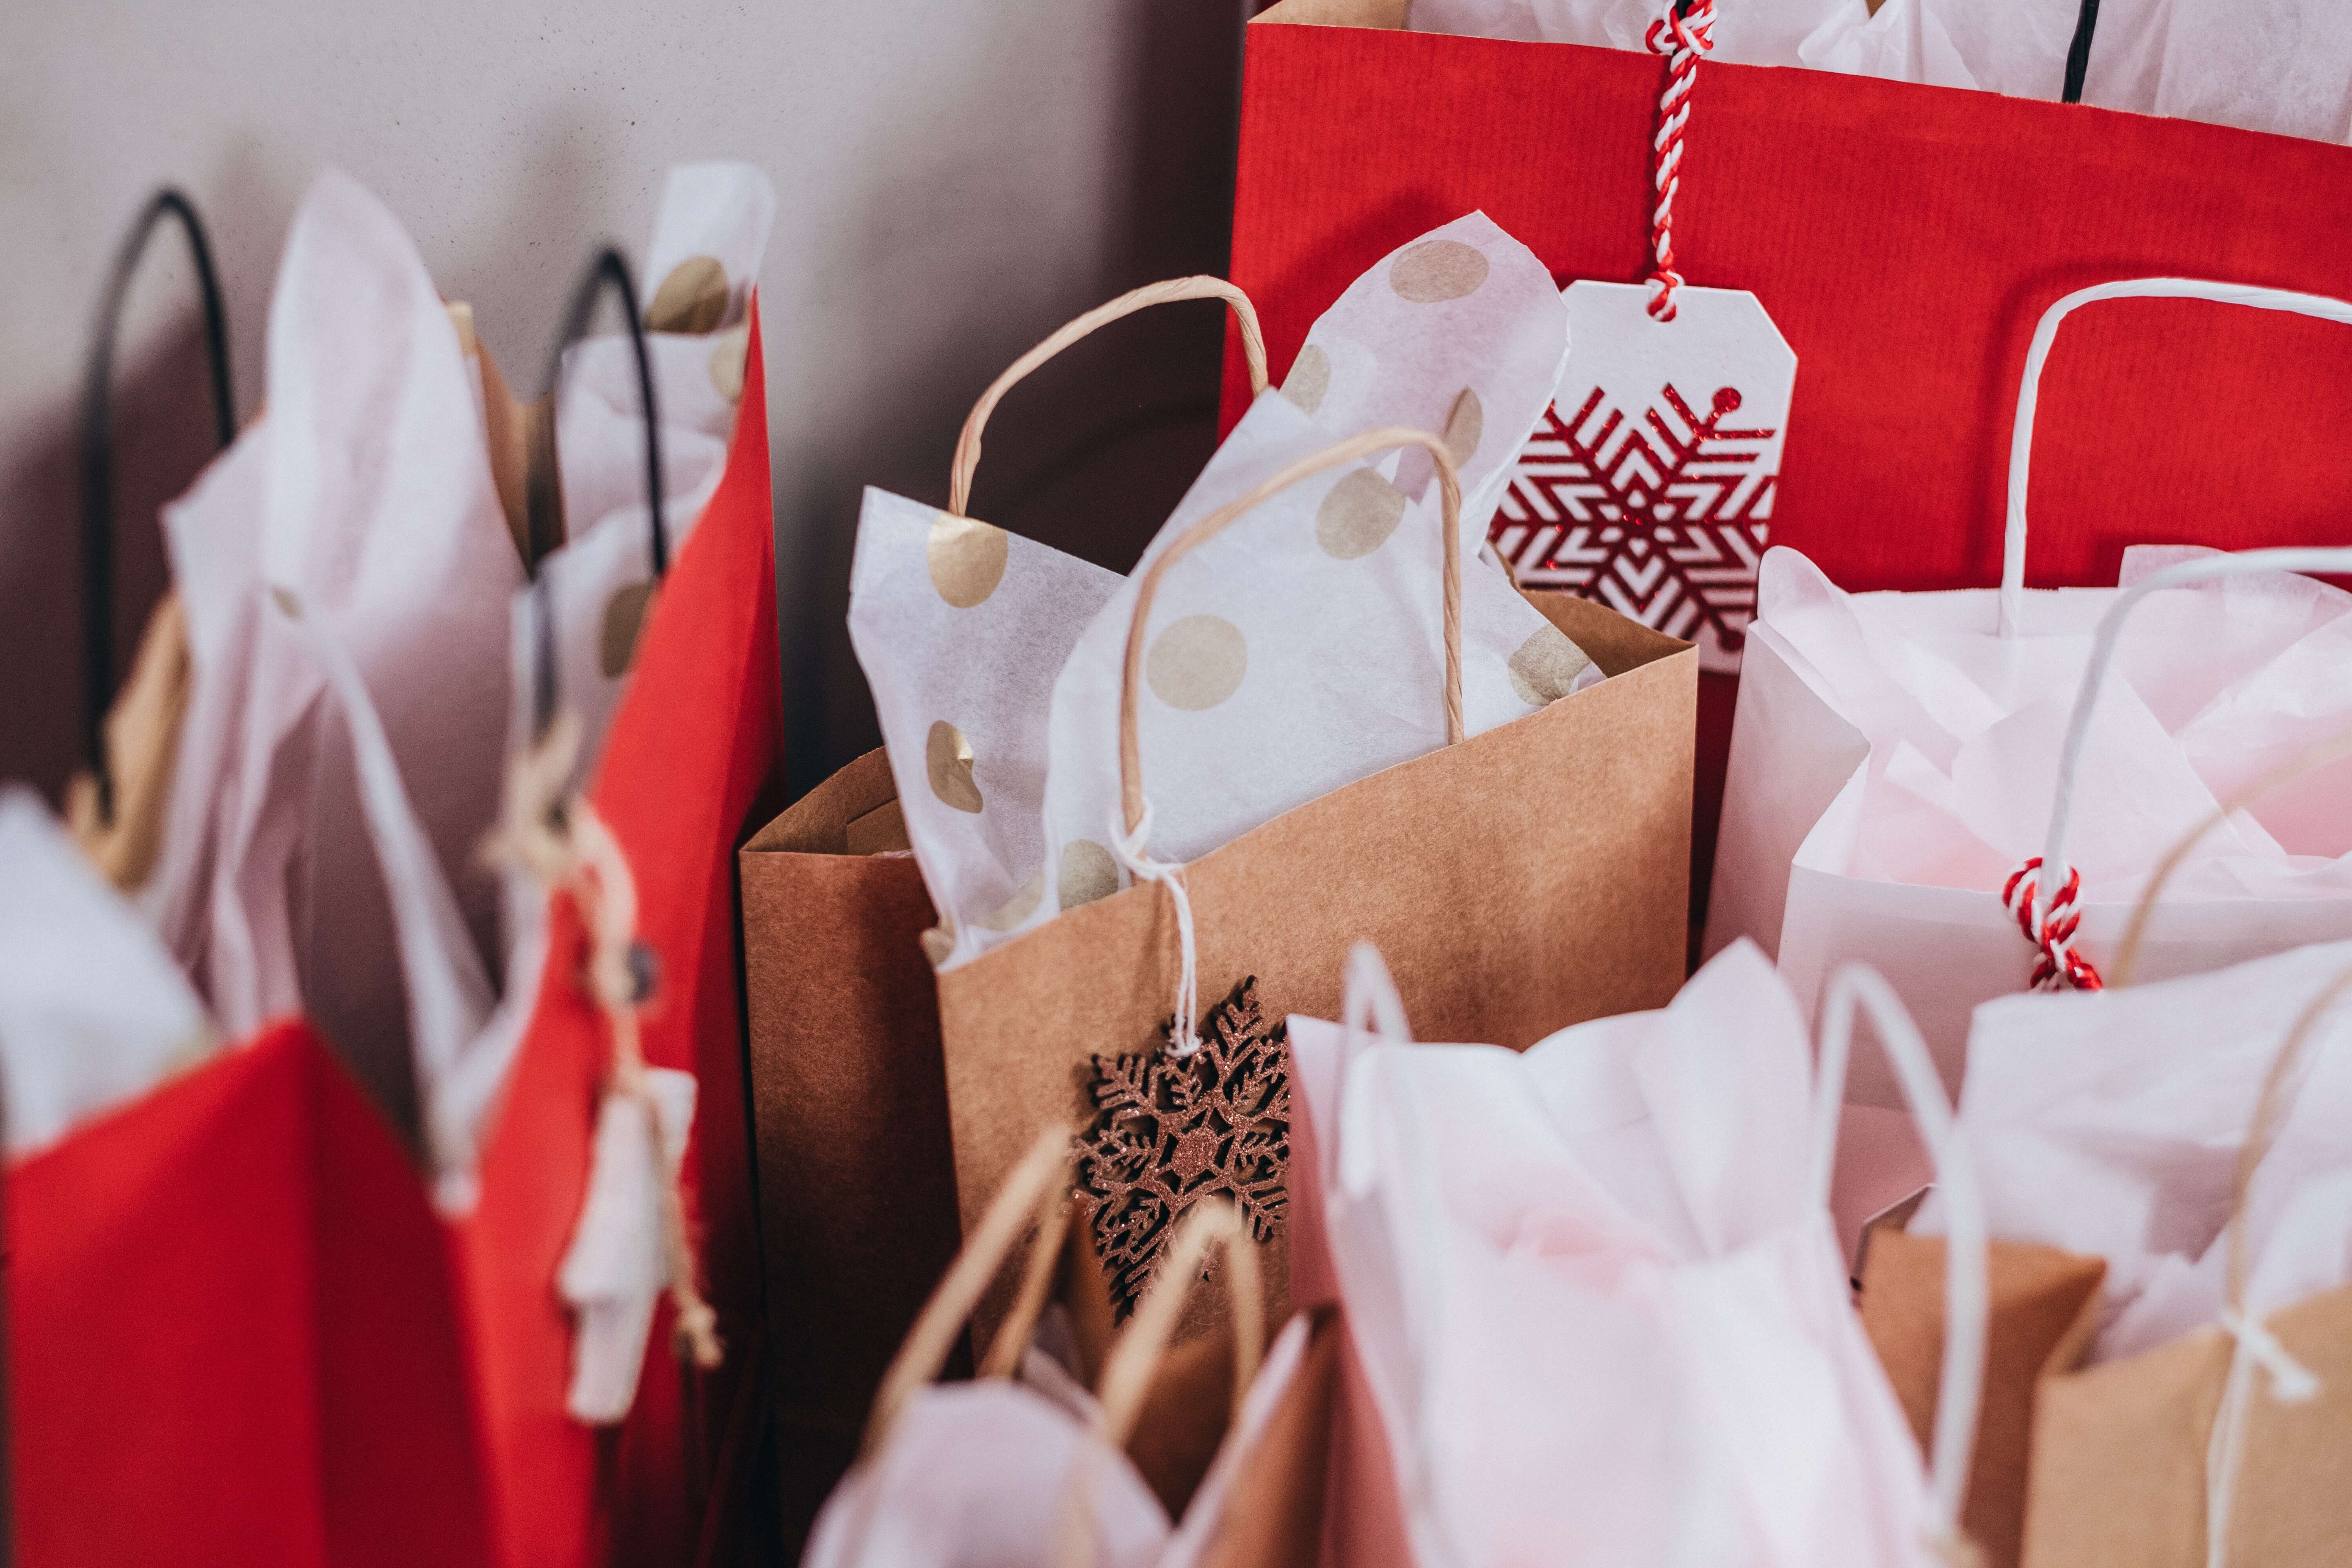 Etsy Urges Sellers to Use 2021 Holiday Trends in their Etsy Shop